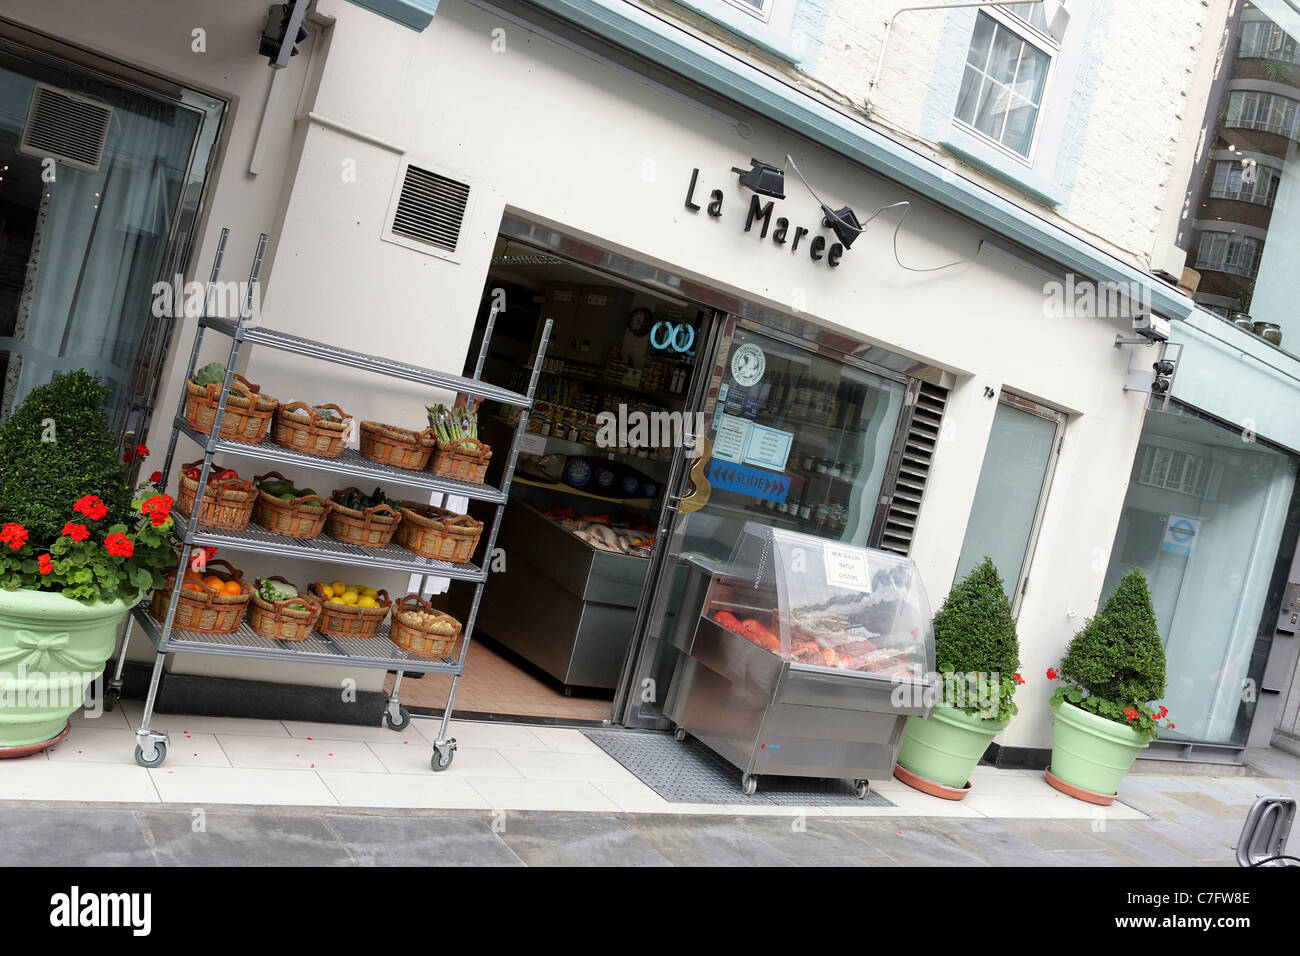 LA MAREE SEAFOOD, seafood retail outlet situated in Sloane Avenue in Chelsea viewed here at an extreme angled aspect. - Stock Image